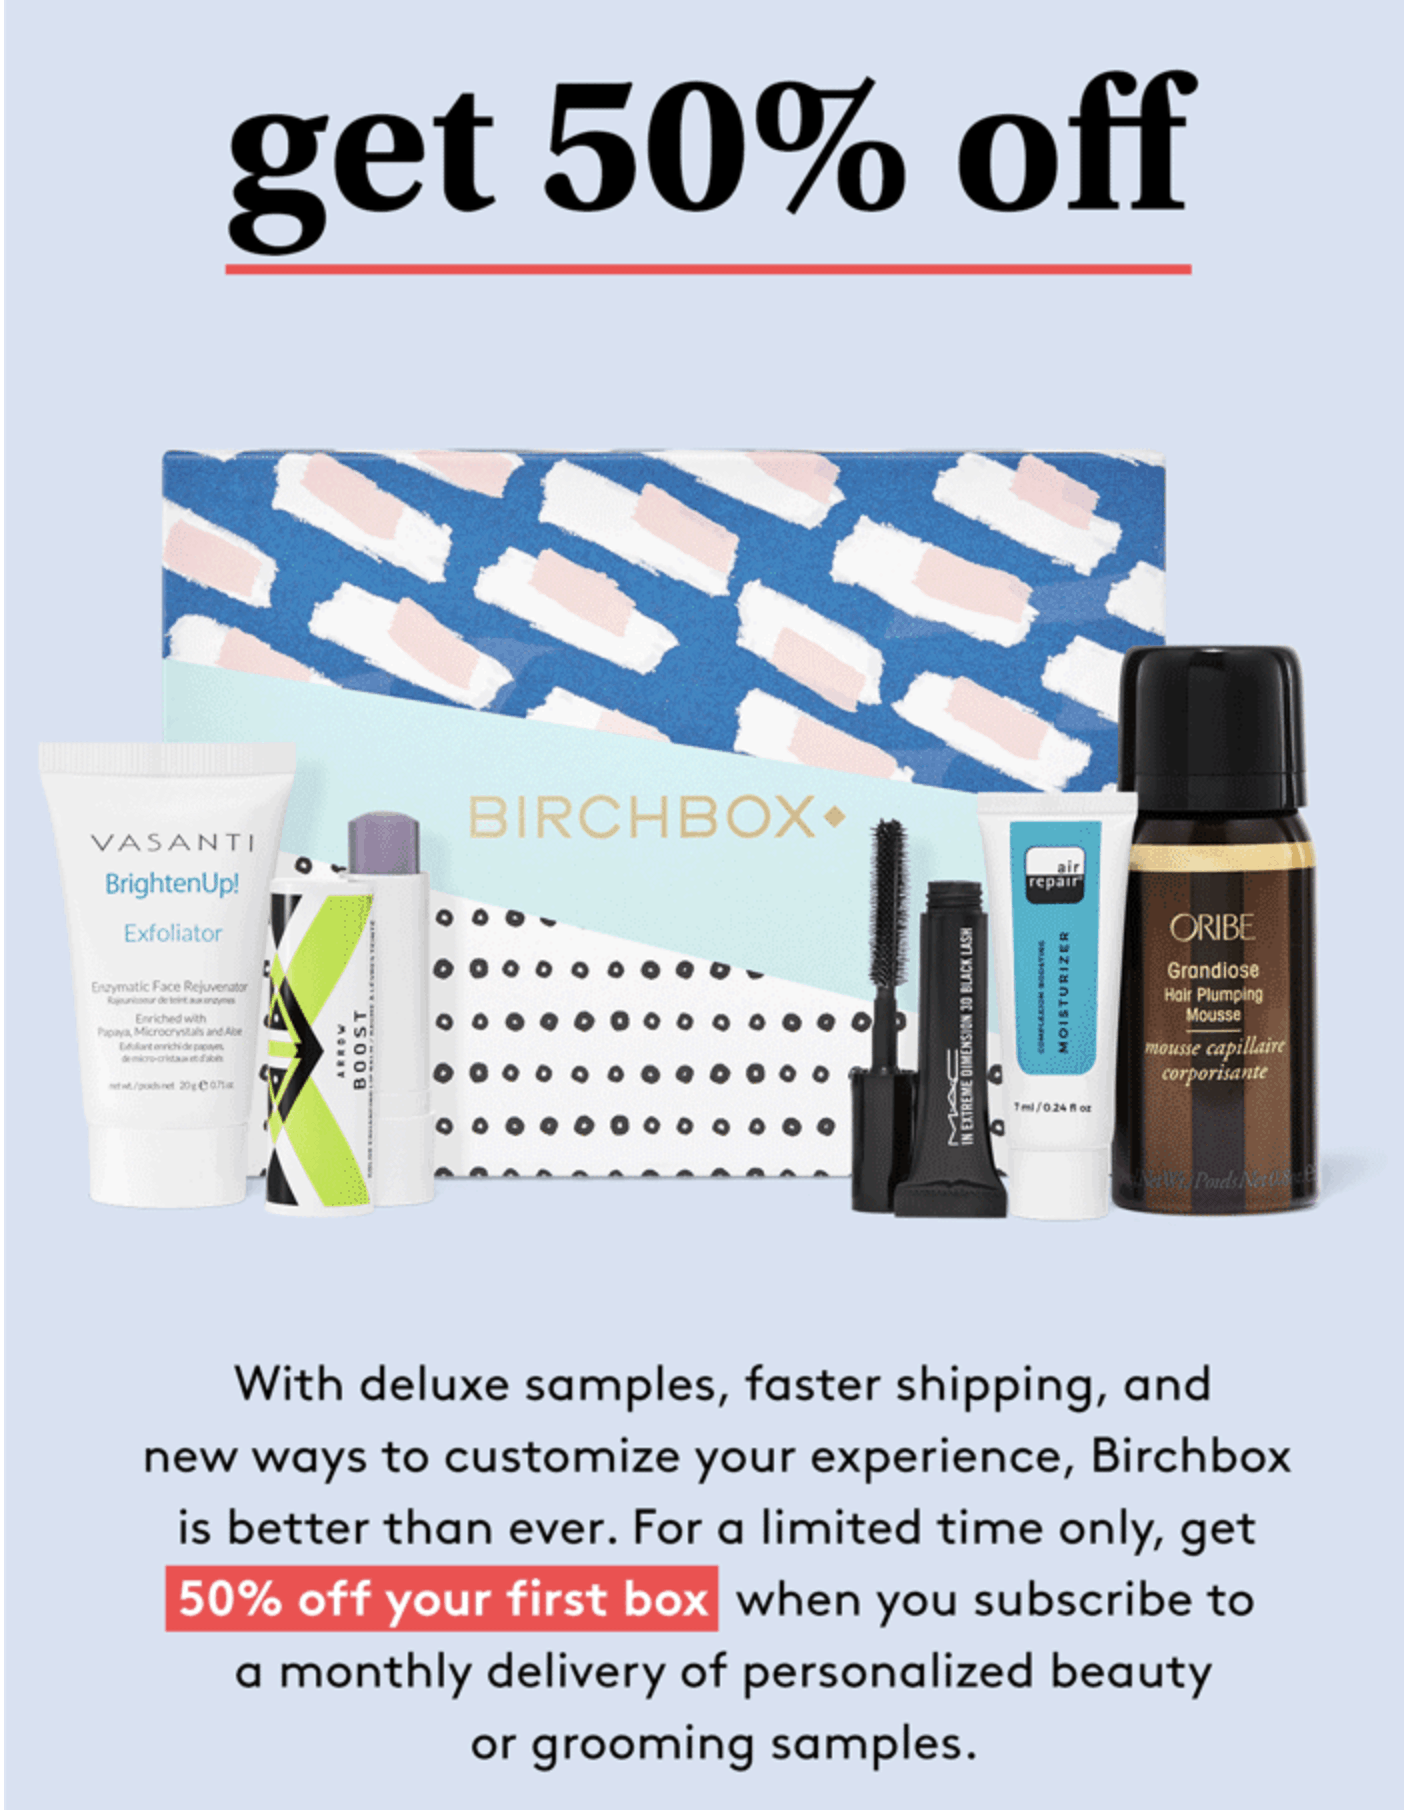 Birchbox Coupon: Get Your First Box 50% Off!